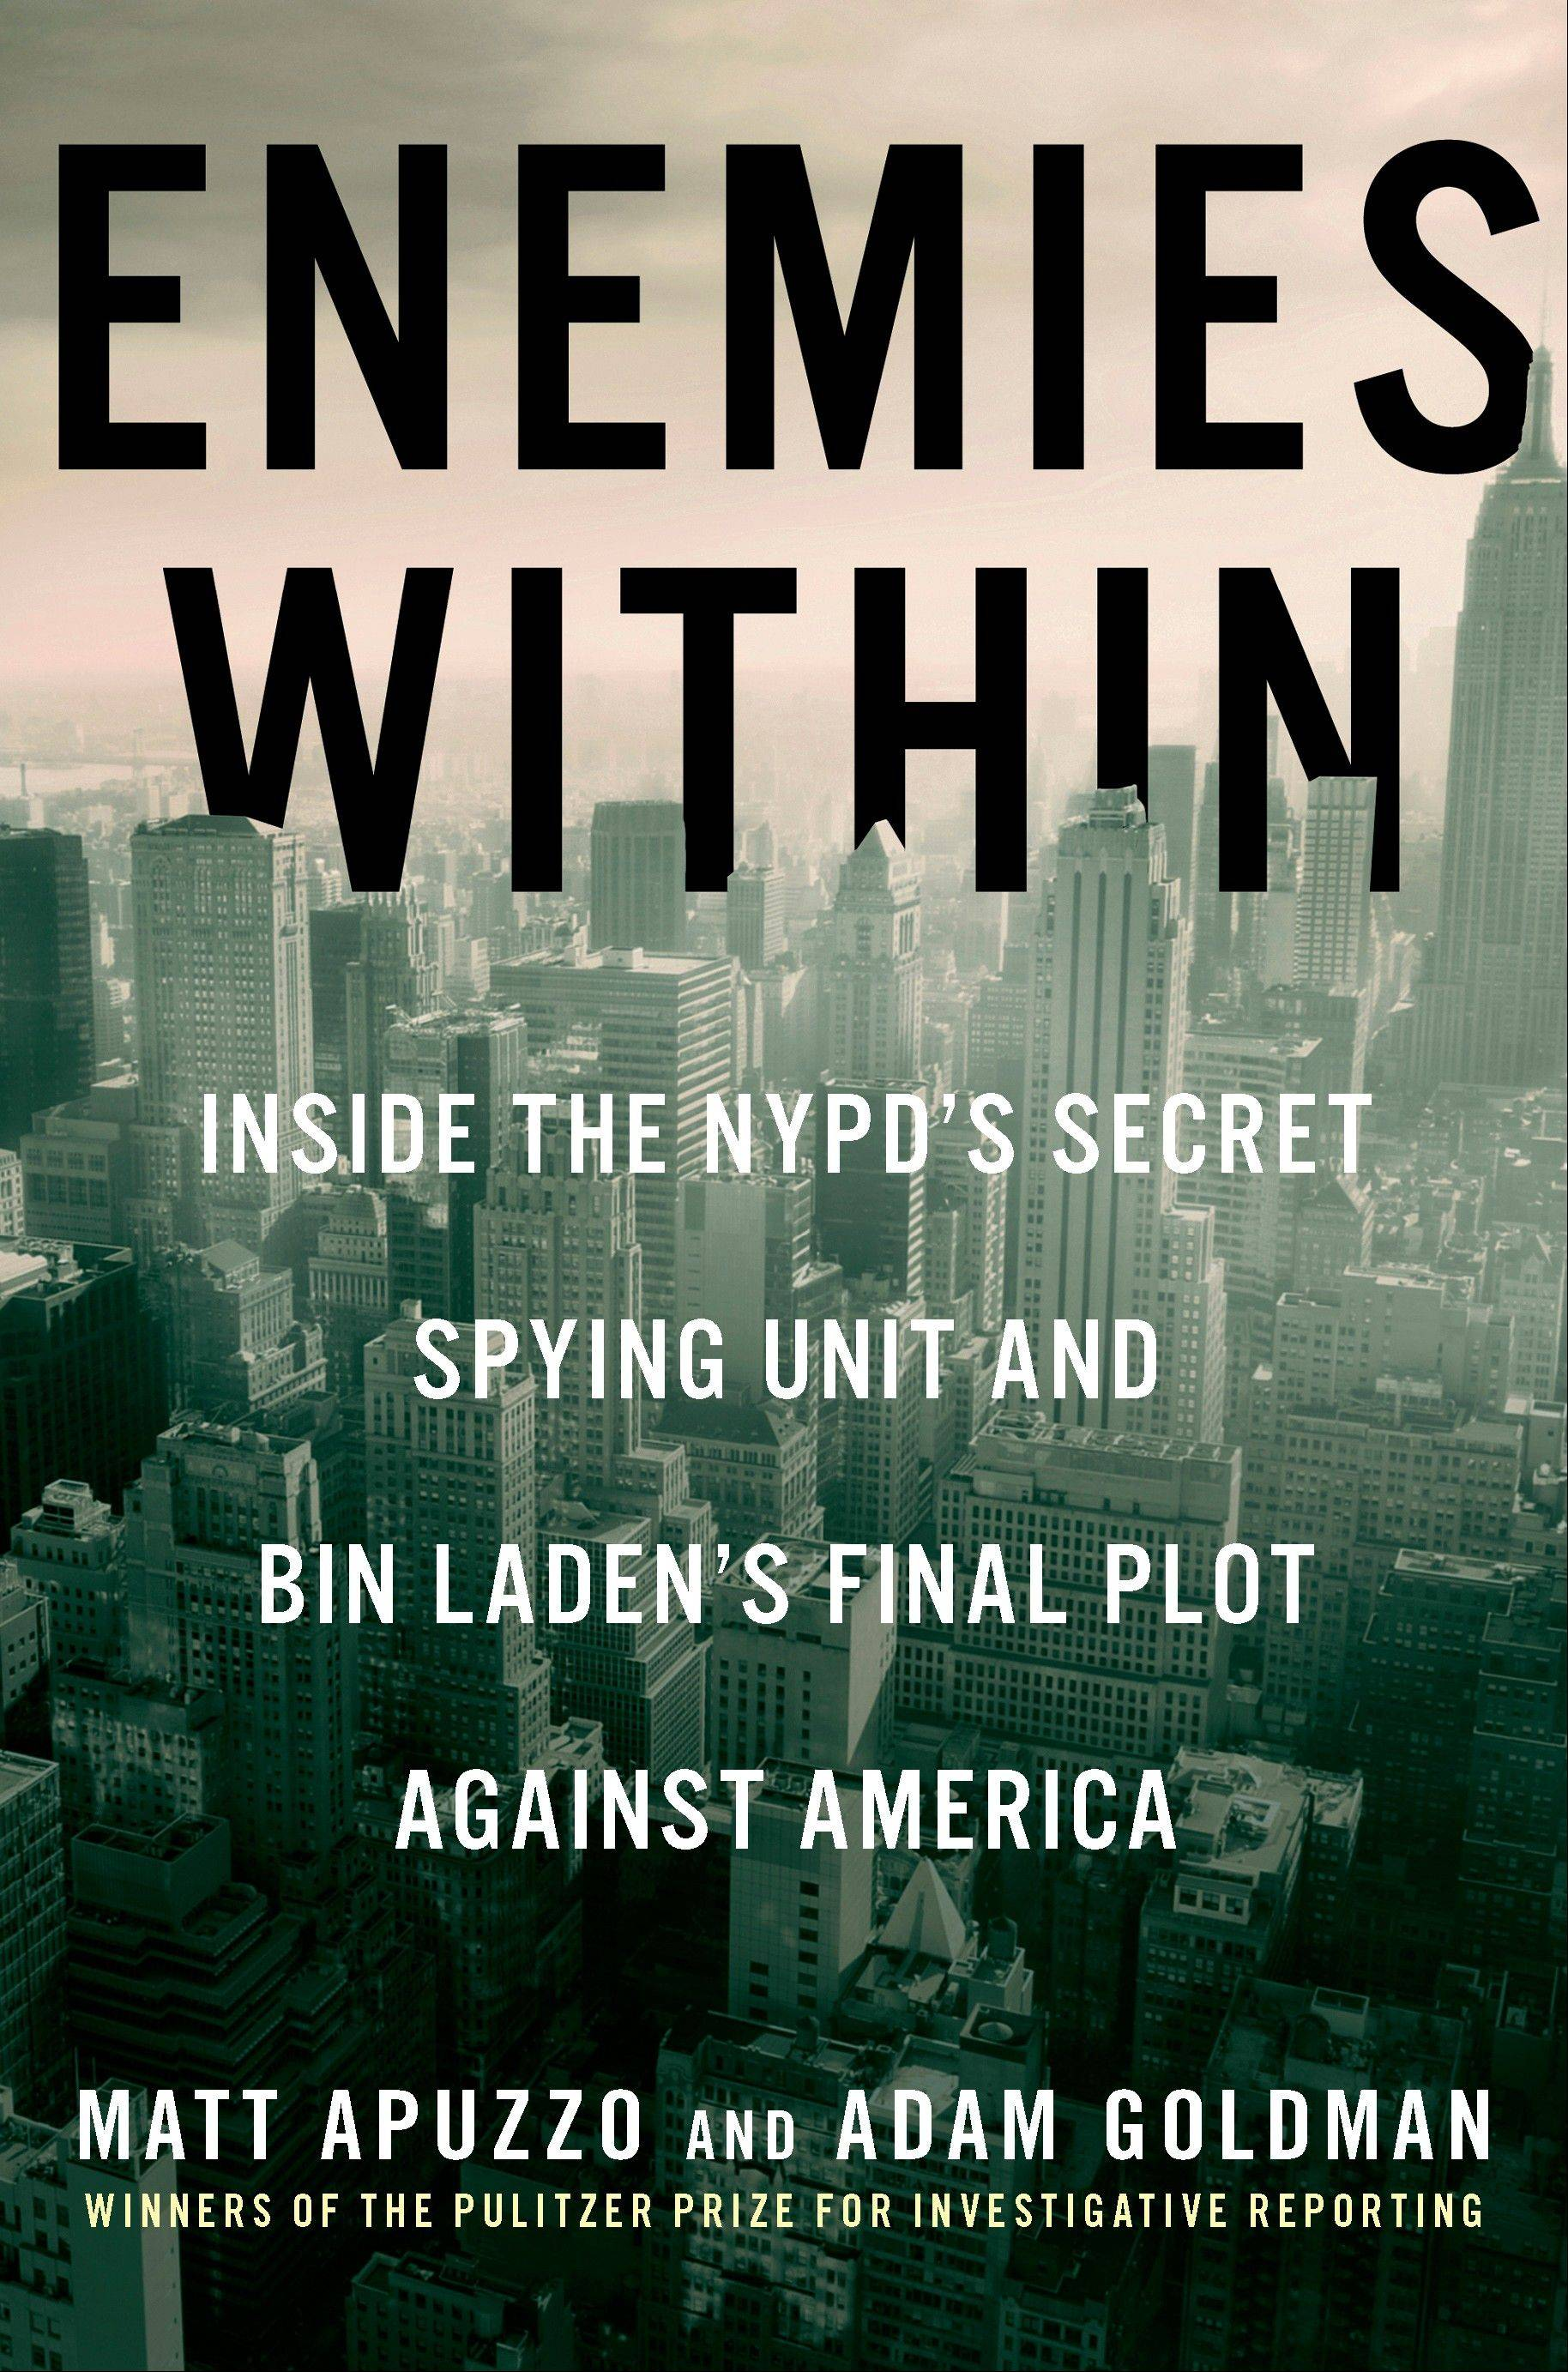 """Enemies Within: Inside the NYPD's Secret Spying Unit and bin Laden's Final Plot Against America"" by Matt Apuzzo and Adam Goldman"